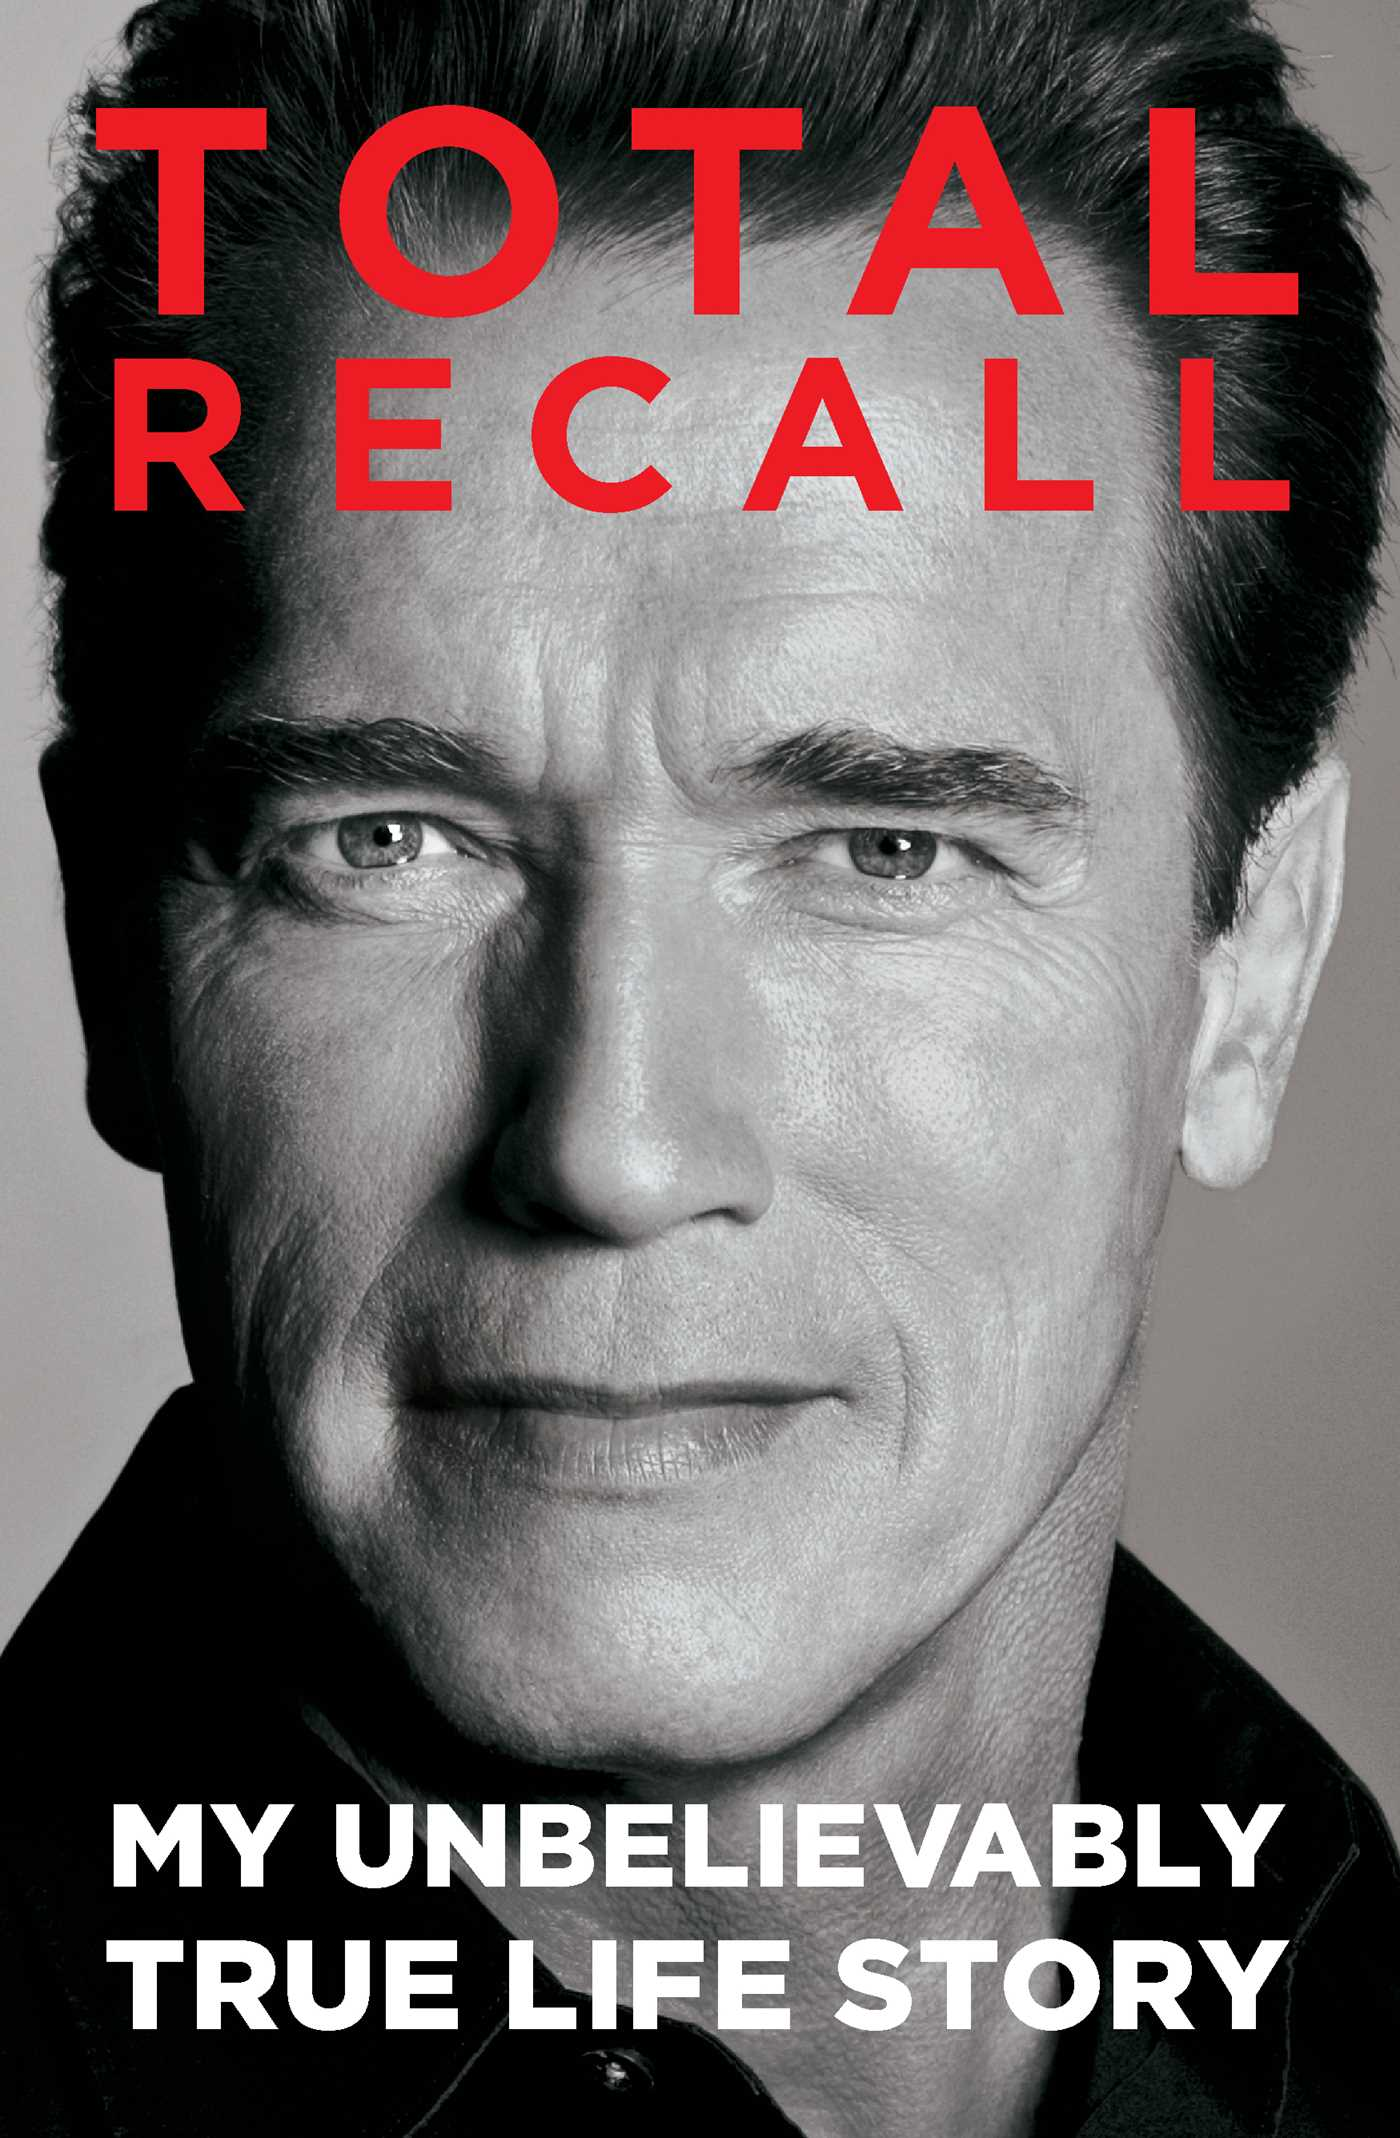 Total-recall-9781451662443_hr